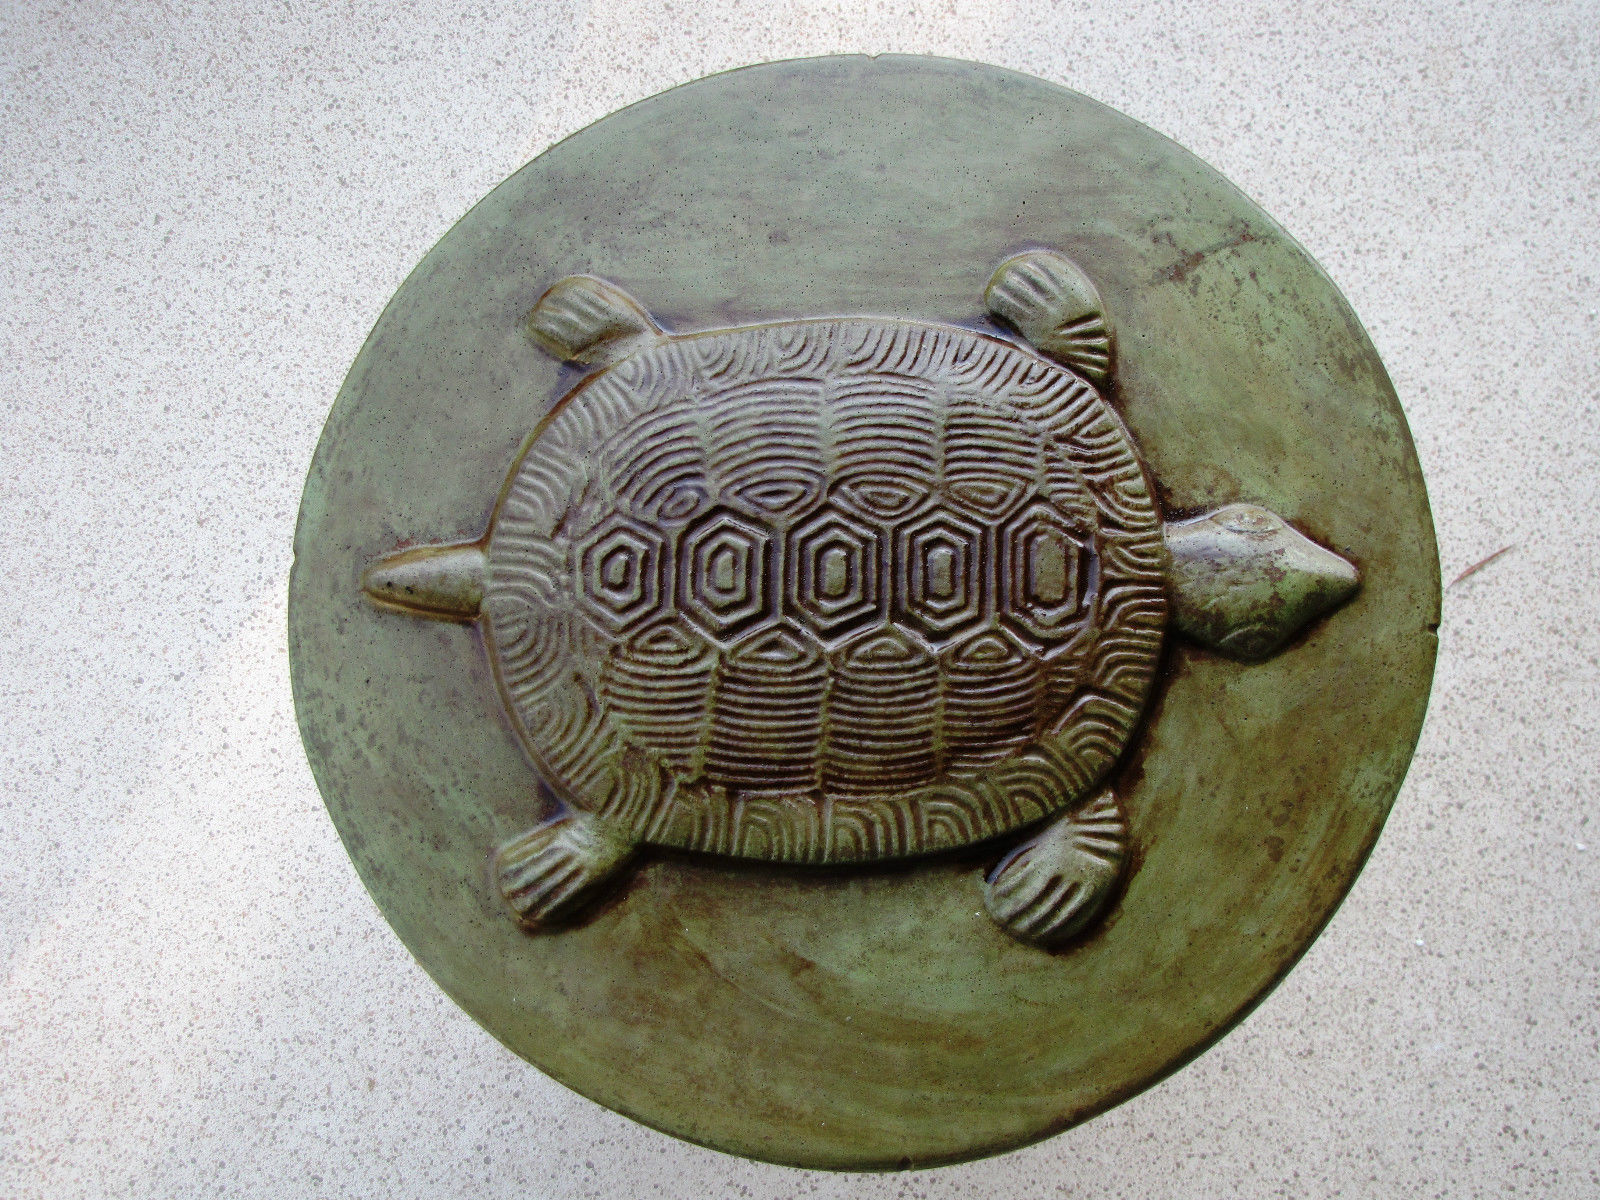 "Round Concrete Turtle Mold 16""x2"" Makes Stepping Stones For About $2.00 Each"